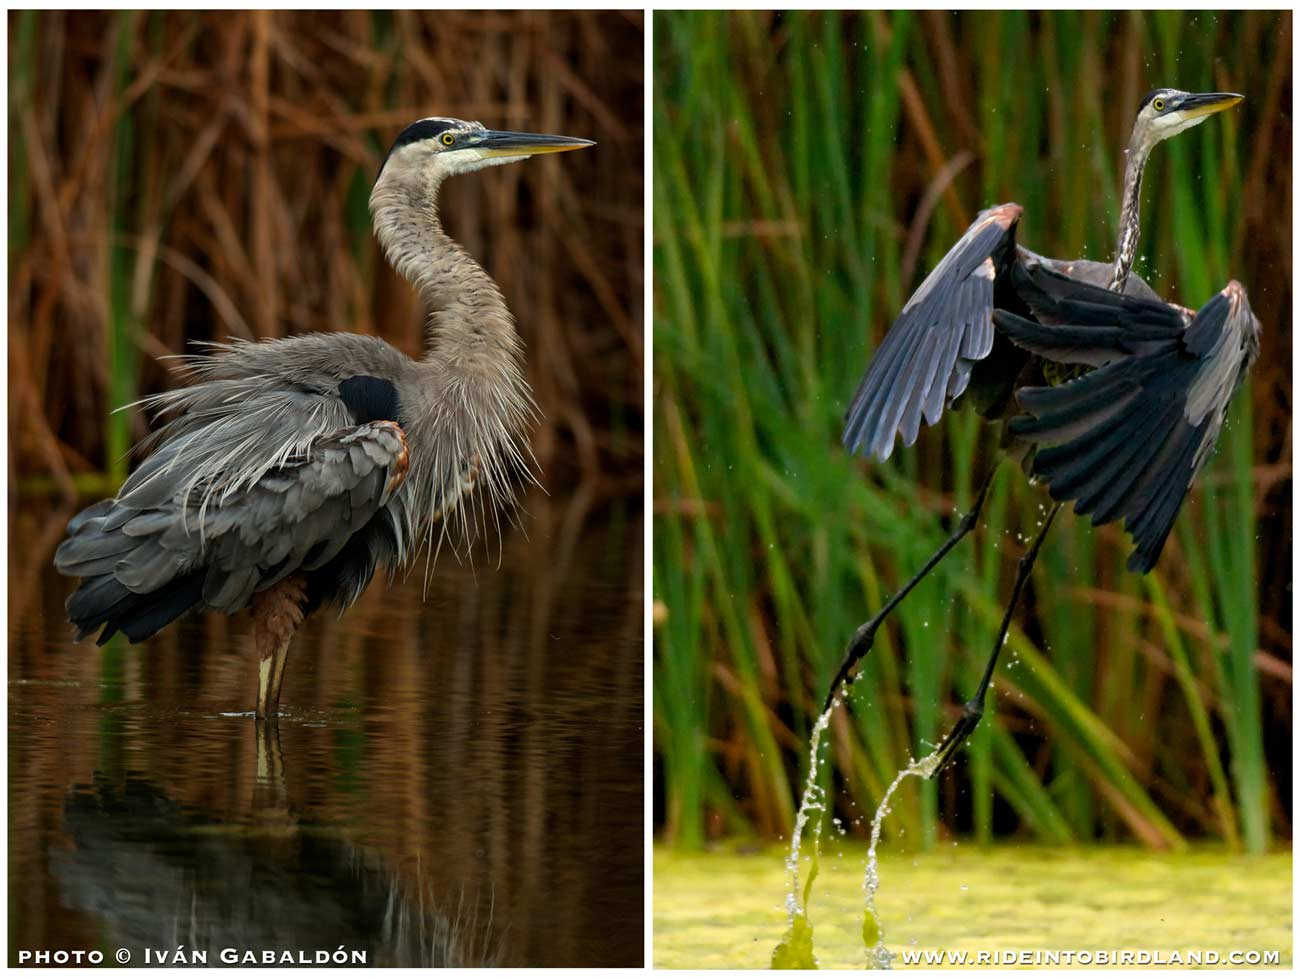 Same bird, two distinct moments: a Great Blue Heron (Ardea herodias) ruffles its feathers, then takes off with the grace of a ballerina. (Photo © Ivan Gabaldon).